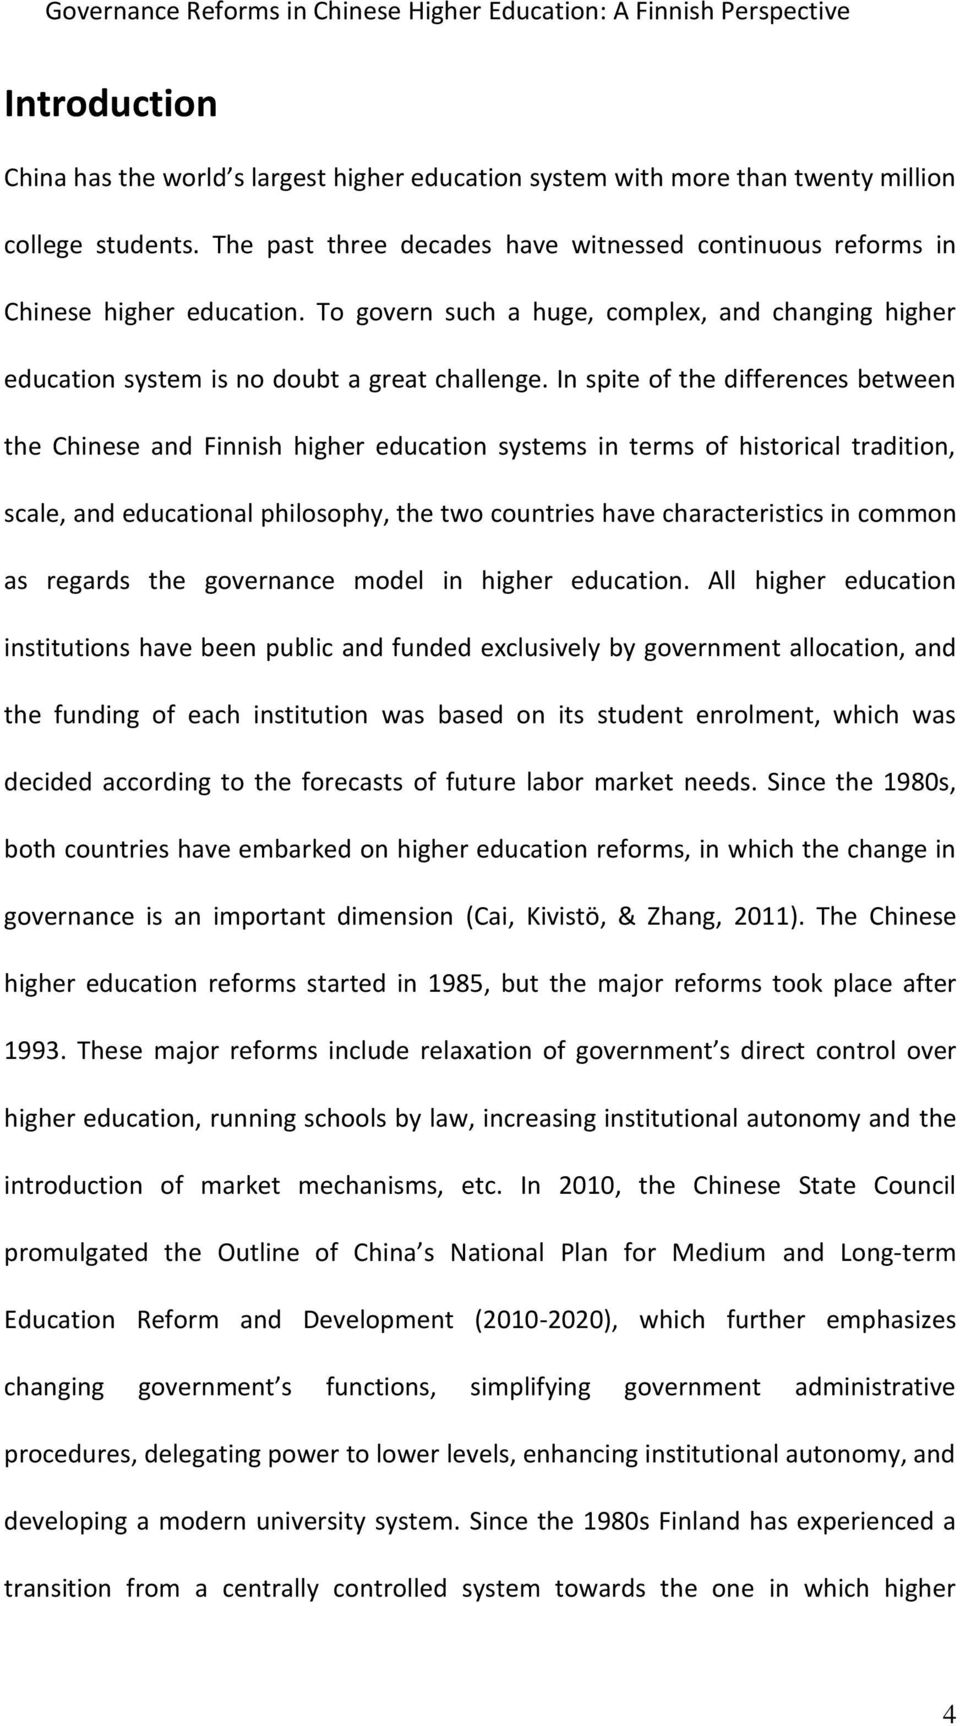 In spite of the differences between the Chinese and Finnish higher education systems in terms of historical tradition, scale, and educational philosophy, the two countries have characteristics in